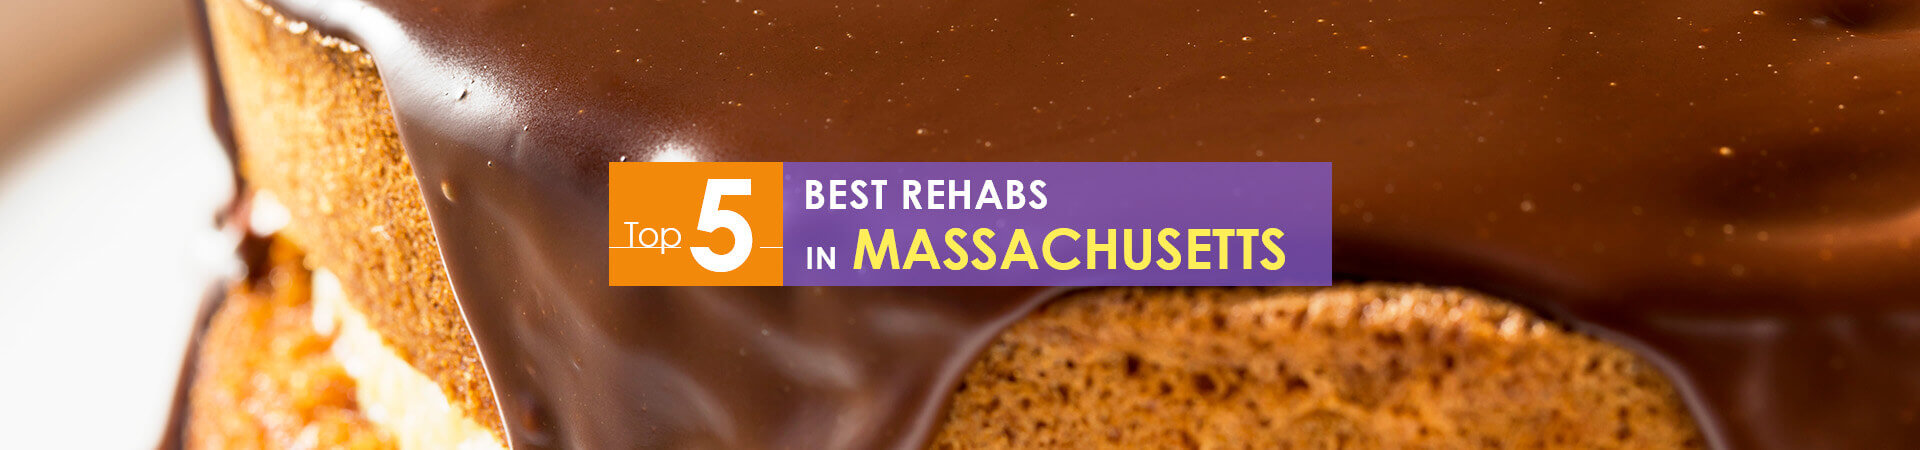 Best rehbas in massachusetts